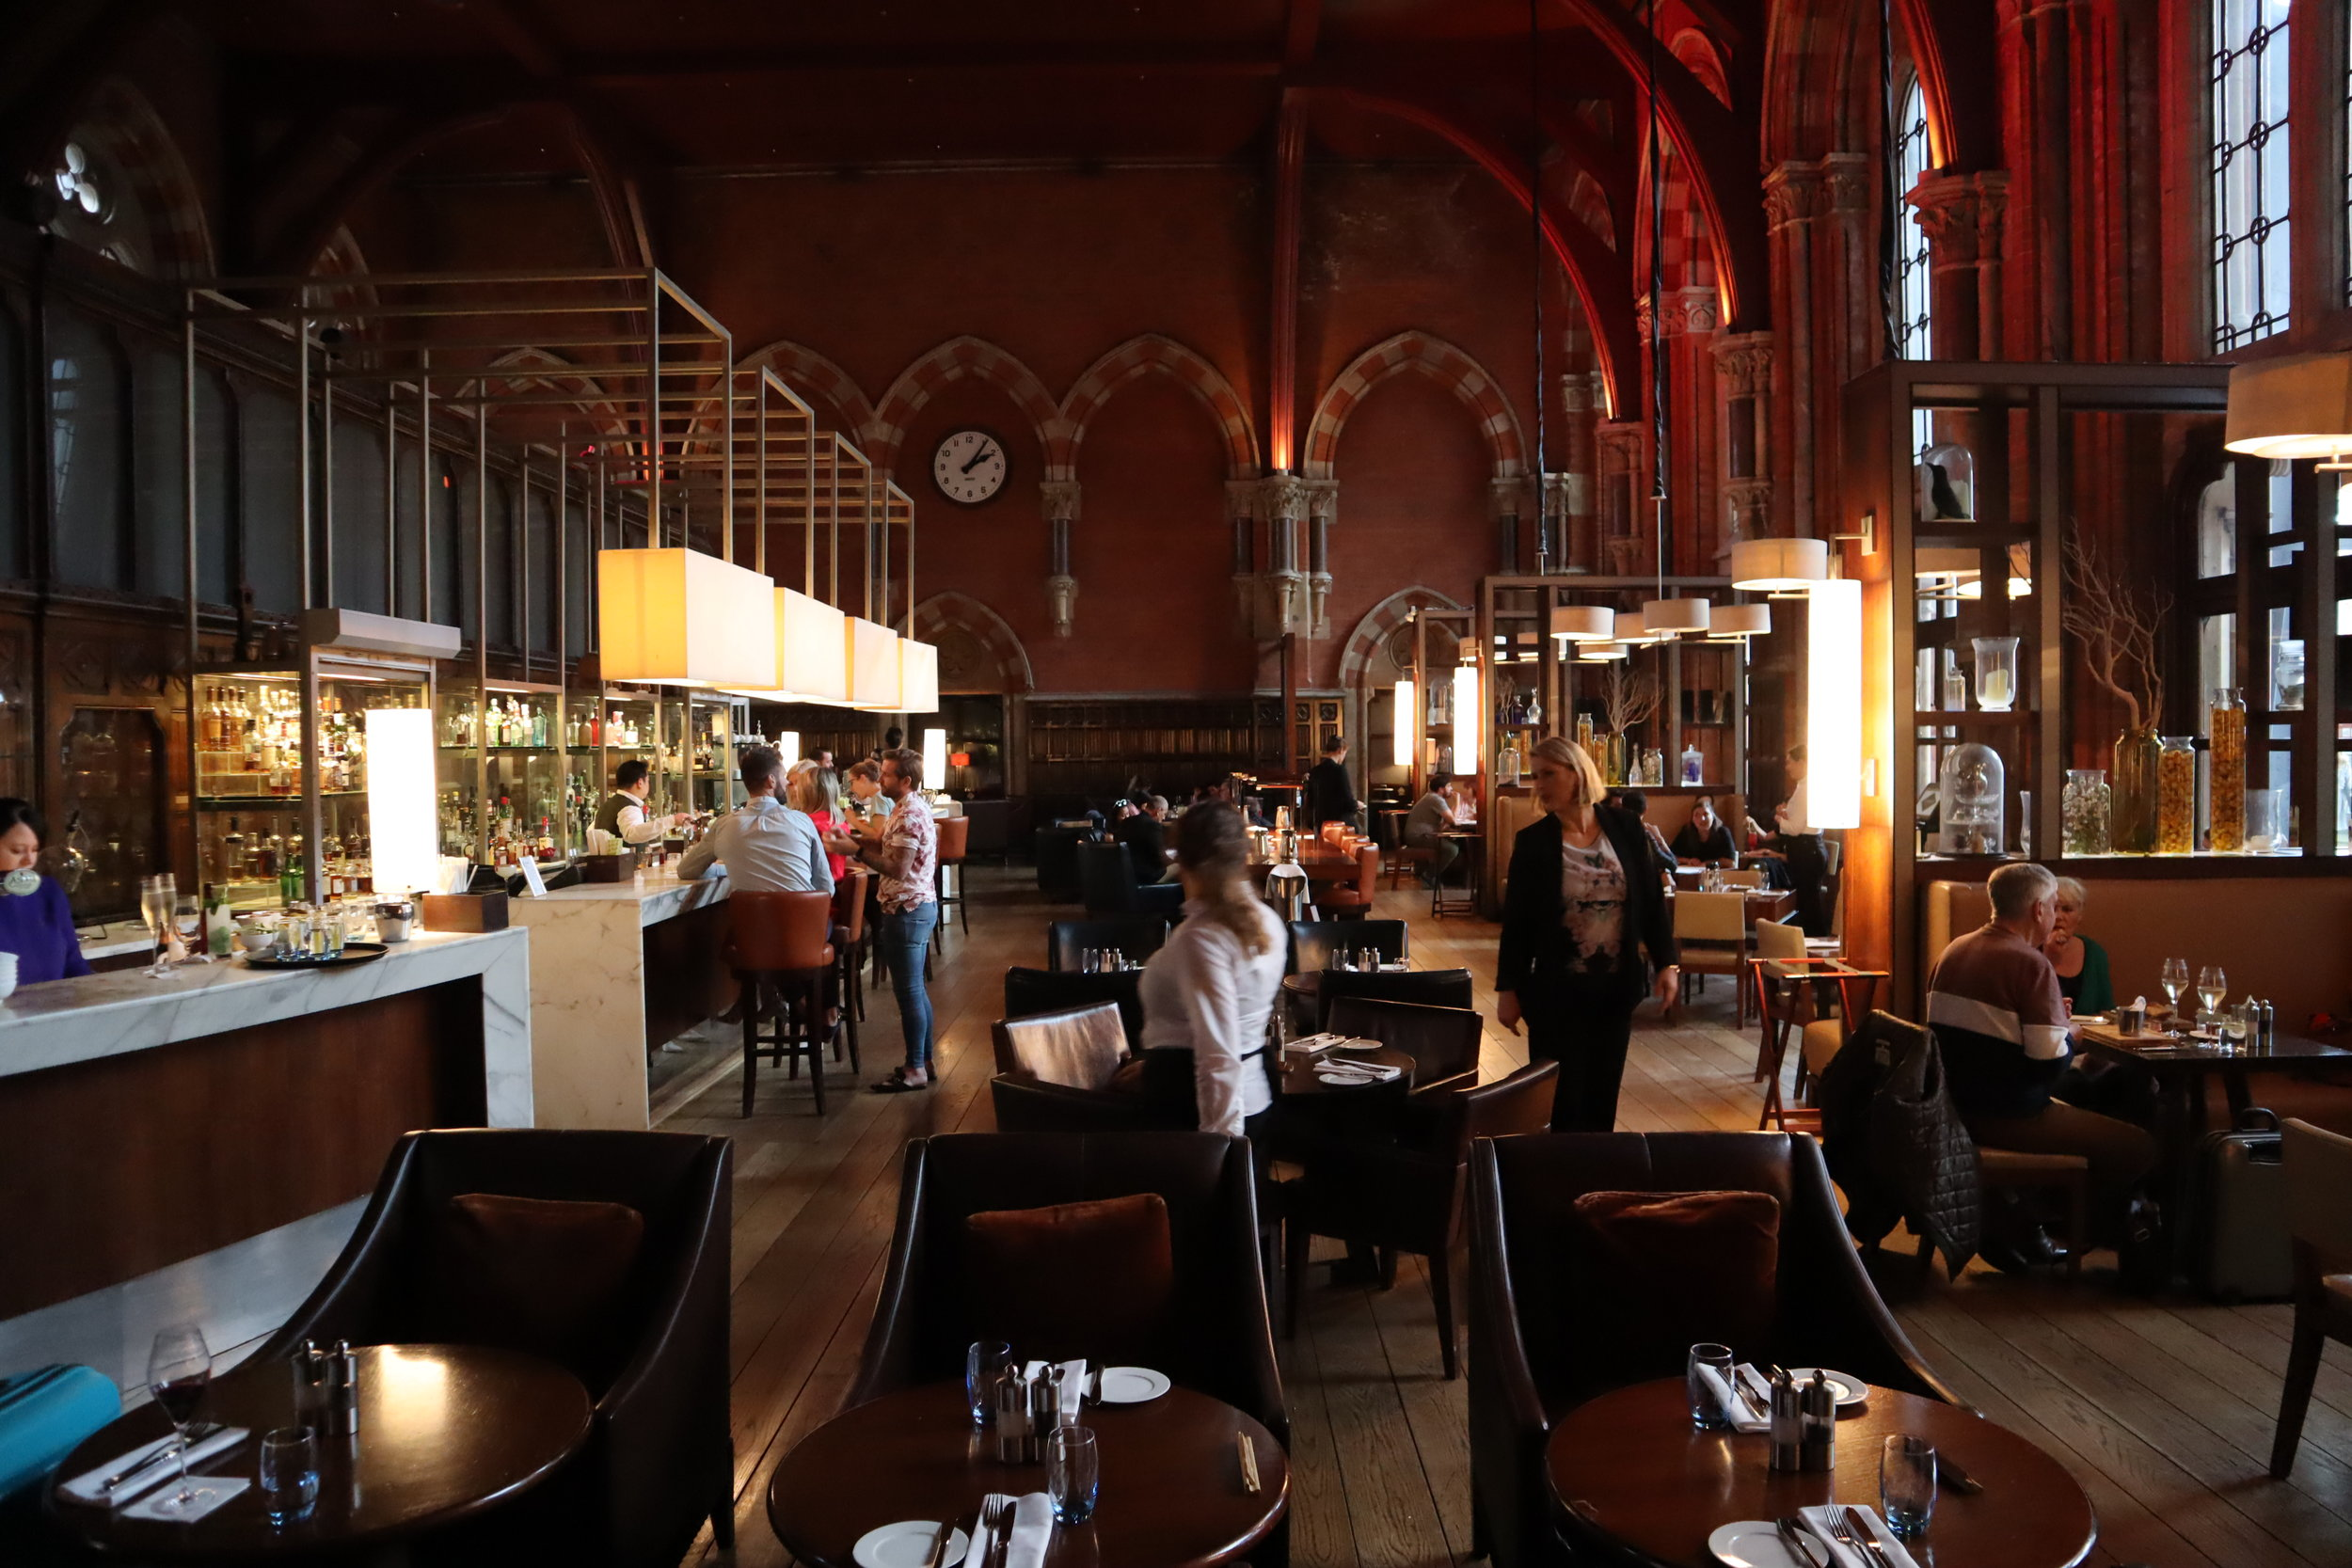 St. Pancras Renaissance Hotel London – Booking Office restaurant